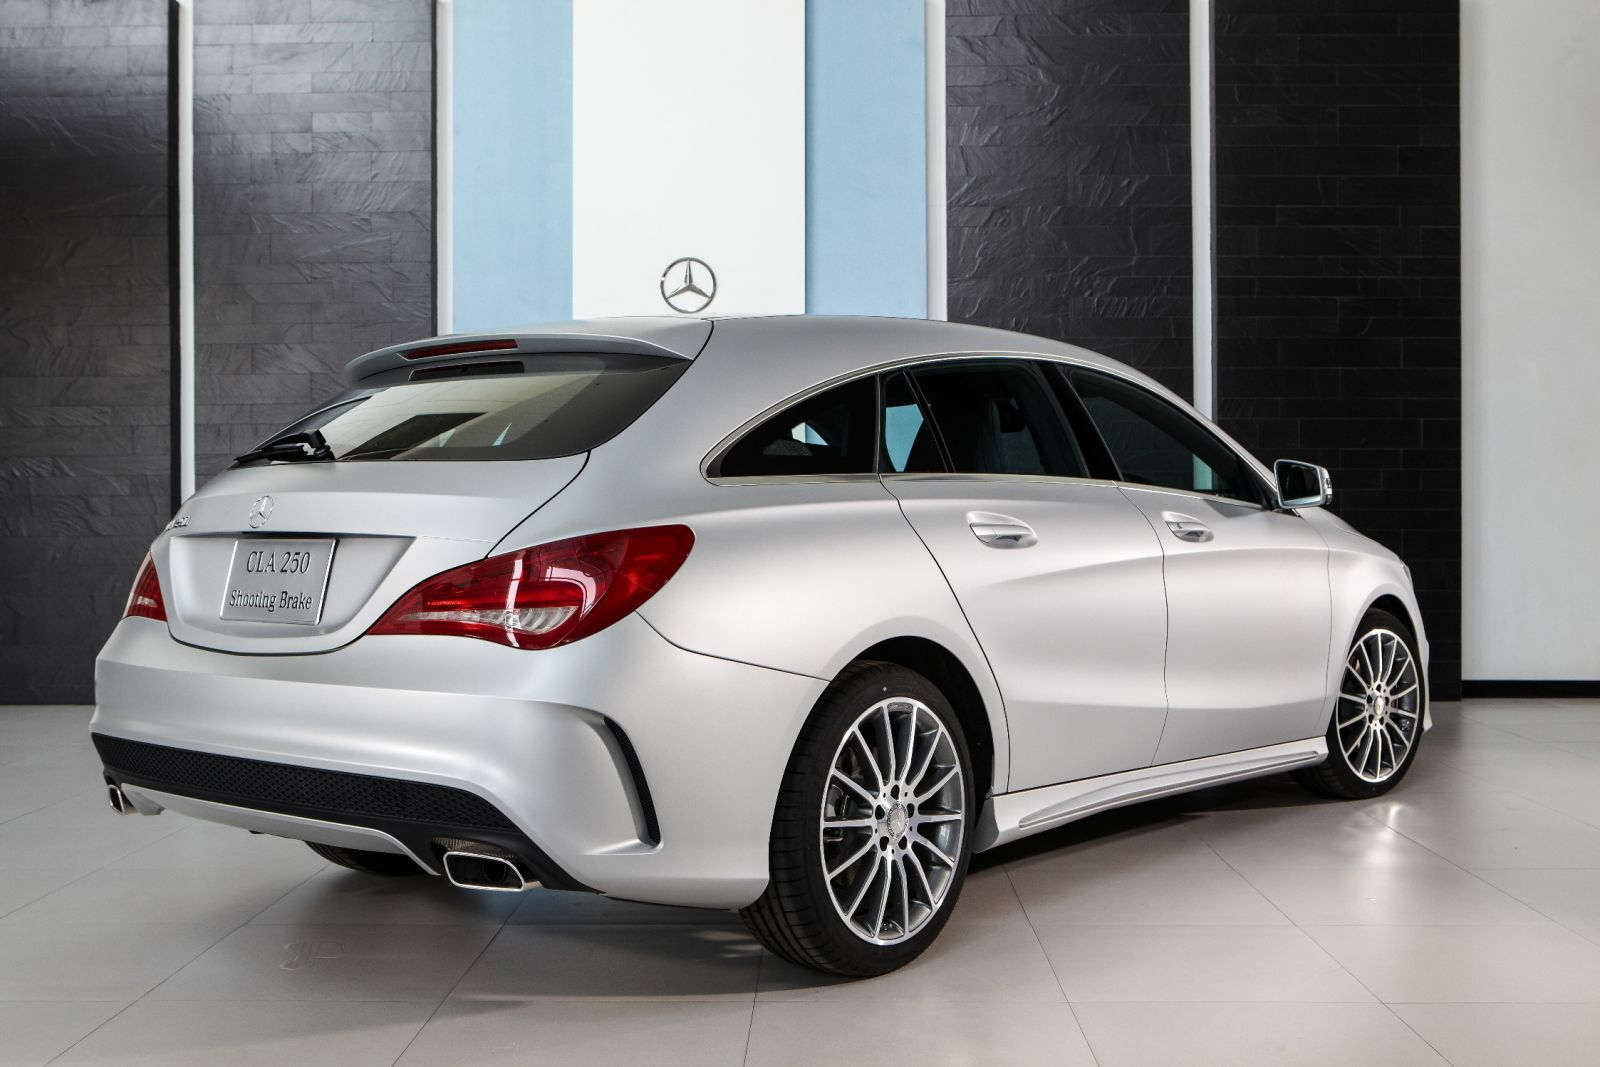 The new cla shooting brake for 2015 mercedes benz cla 250 price